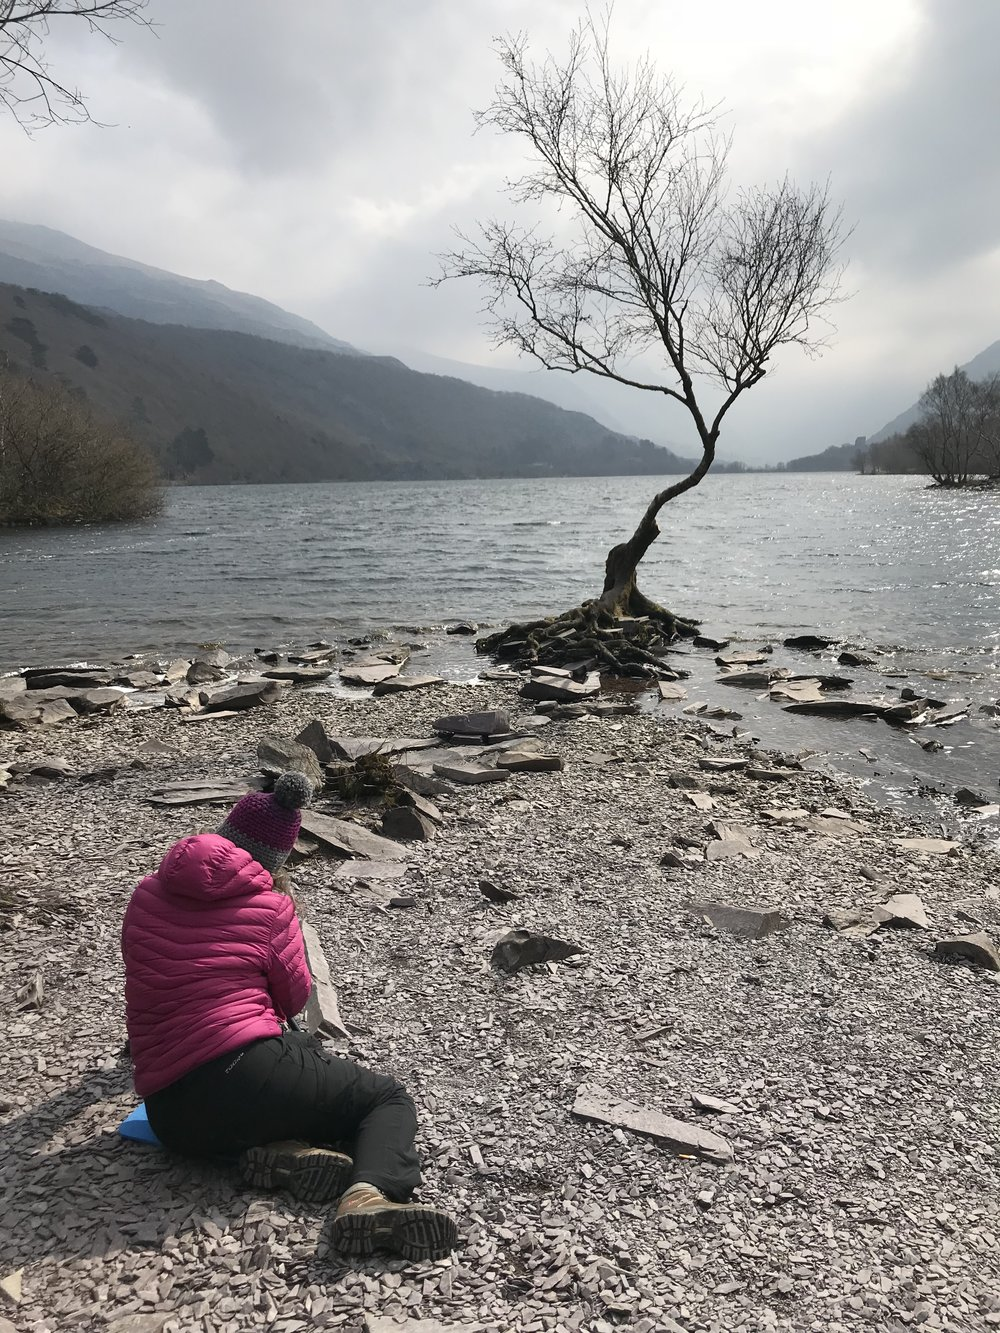 Hilary by 'that tree' at Padarn, Llanberis